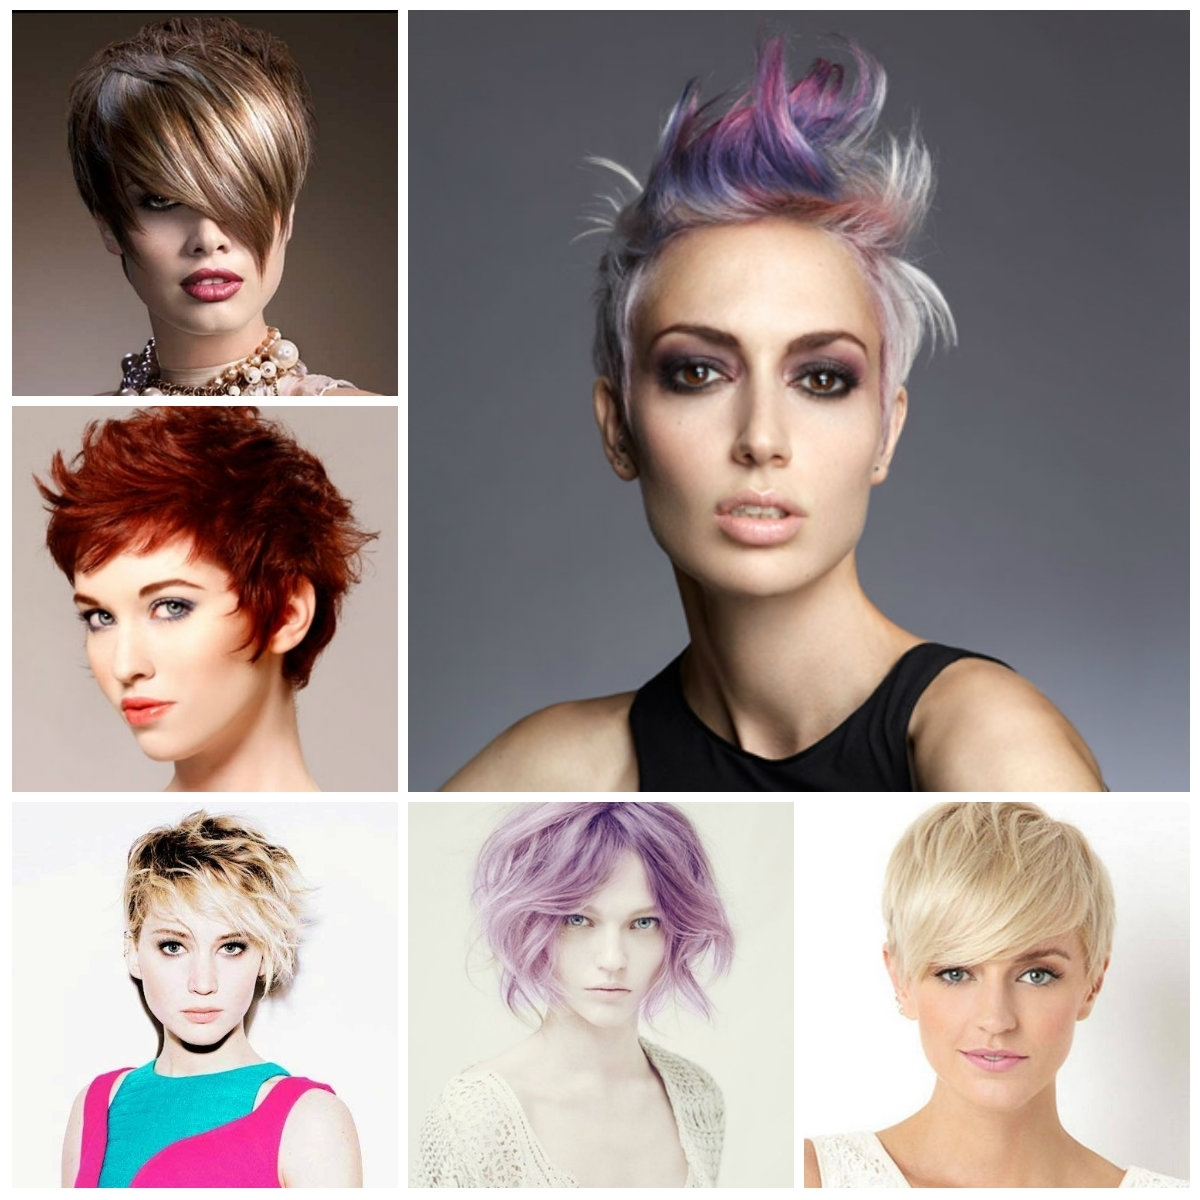 Emejing Hair Color Short Hairstyles Gallery – Styles & Ideas 2018 Within Newest Pixie Hairstyles Colors (View 5 of 15)